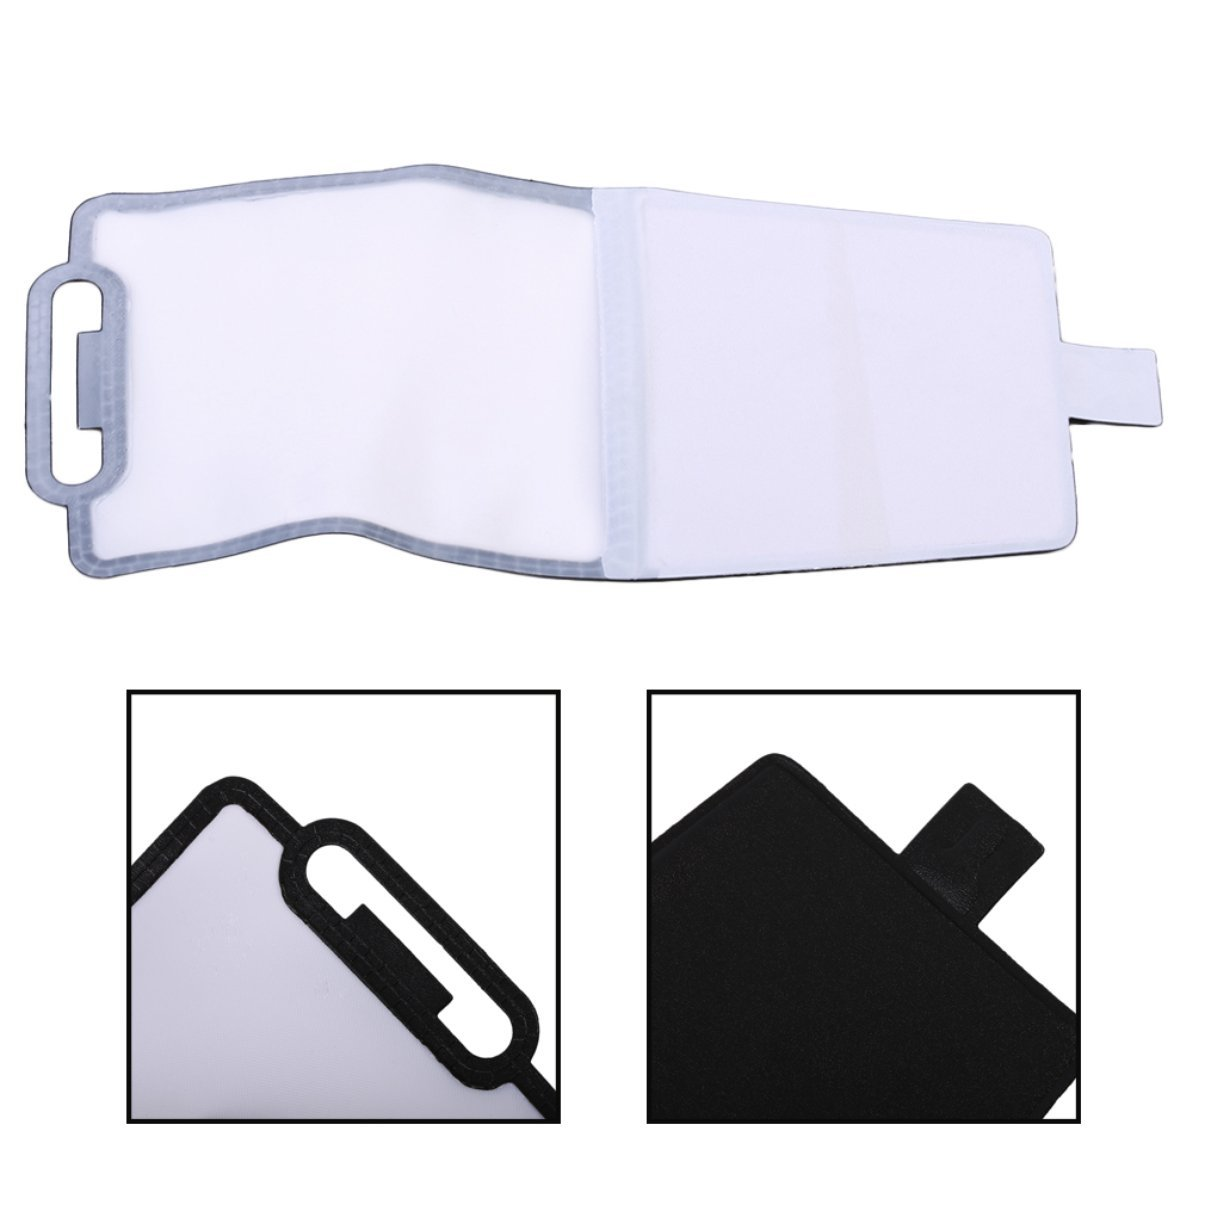 Universal Camera Soft Screen Pop-Up Flash Diffuser Super Lightweight Soft Screen Pop-Up Flash Diffuser for Camera